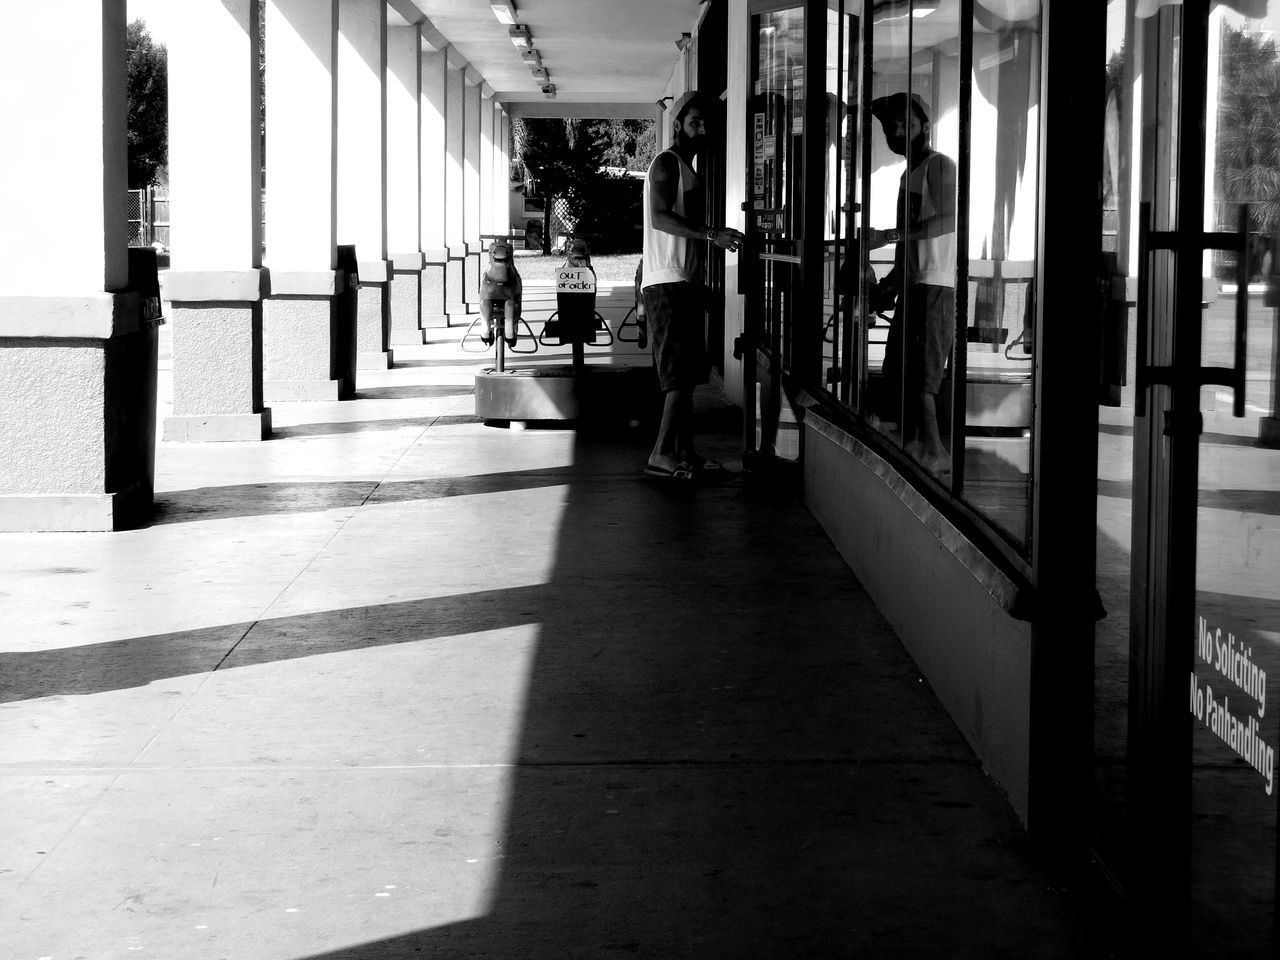 Monochrome Photography Outdoors Candid Real People Man People Watching People Of EyeEm Person Everyday People Everyday Lives Every Picture Tells A Story Snapshots Of Life Florida Streetphotography Shadow And Light Darkness And Light Light And Shadow Notes From The Underground Random Acts Of Photography Urban Exploration Blackandwhite City Floridaphotographer EyeEm Best Shots - Black + White